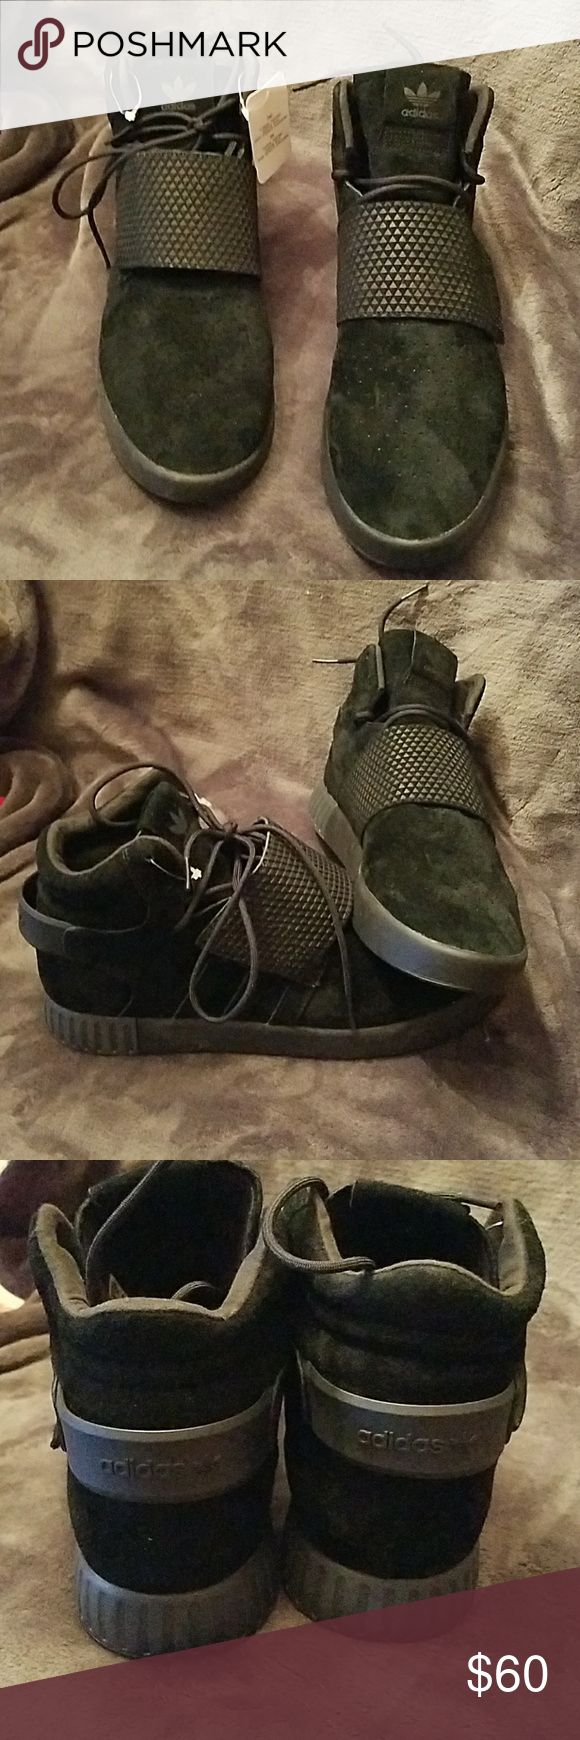 New Adidas Tubular Invader Strap Sneakers Never Worn.. Great pair of Black Adidas Tubular Invader Strapped Kanye W. Mens Sneakers.. Size 10.5 adidas Shoes Sneakers #sneakersadidas